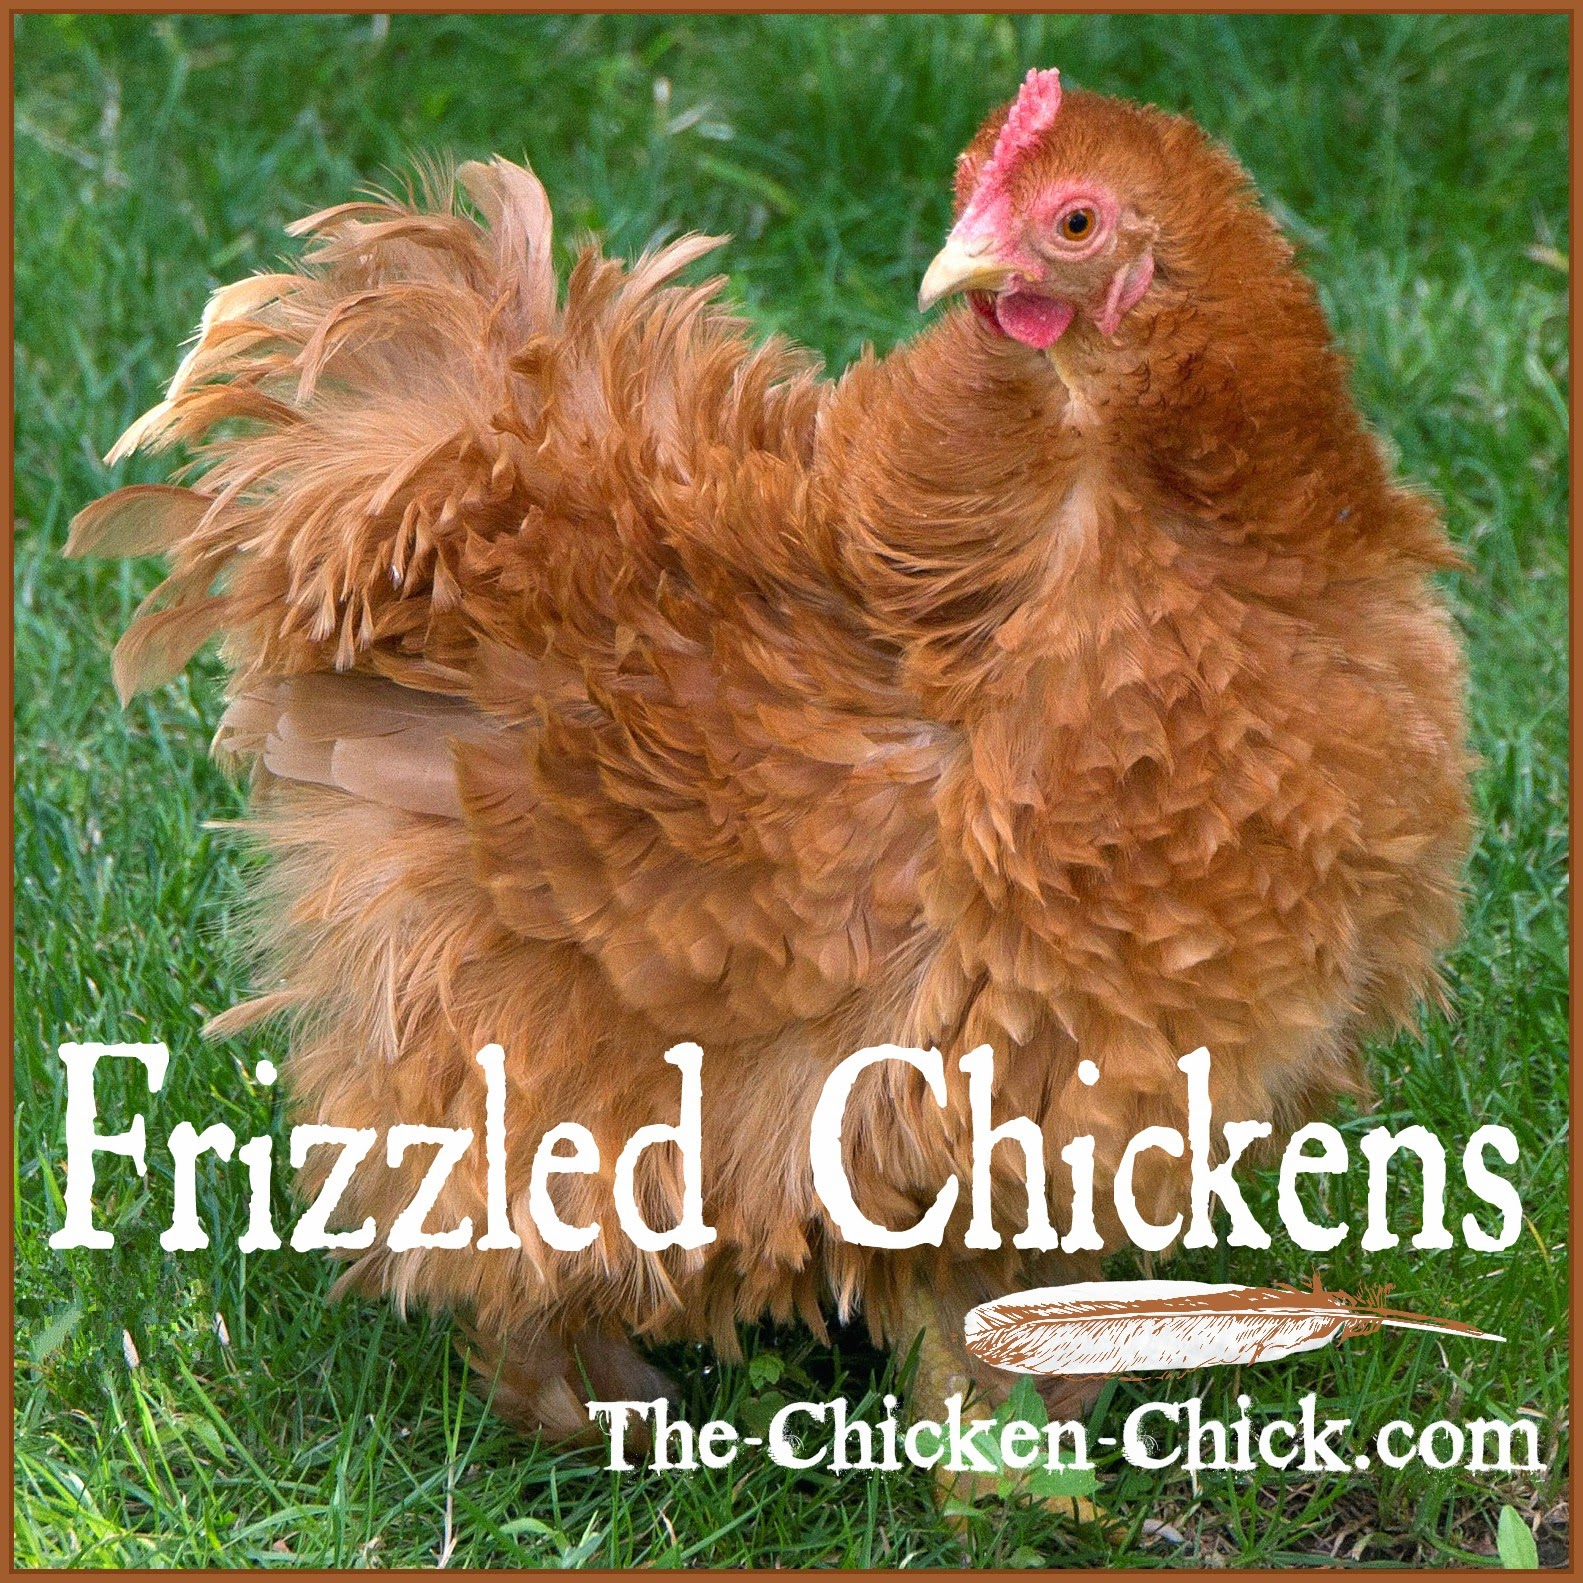 """Frizzle"" refers to a genetic trait that causes a chicken's feathers to grow out and curl away from the body instead of growing flat and smooth, following the body contour. Frizzle is not a breed, it is a genetically programmed feather type."